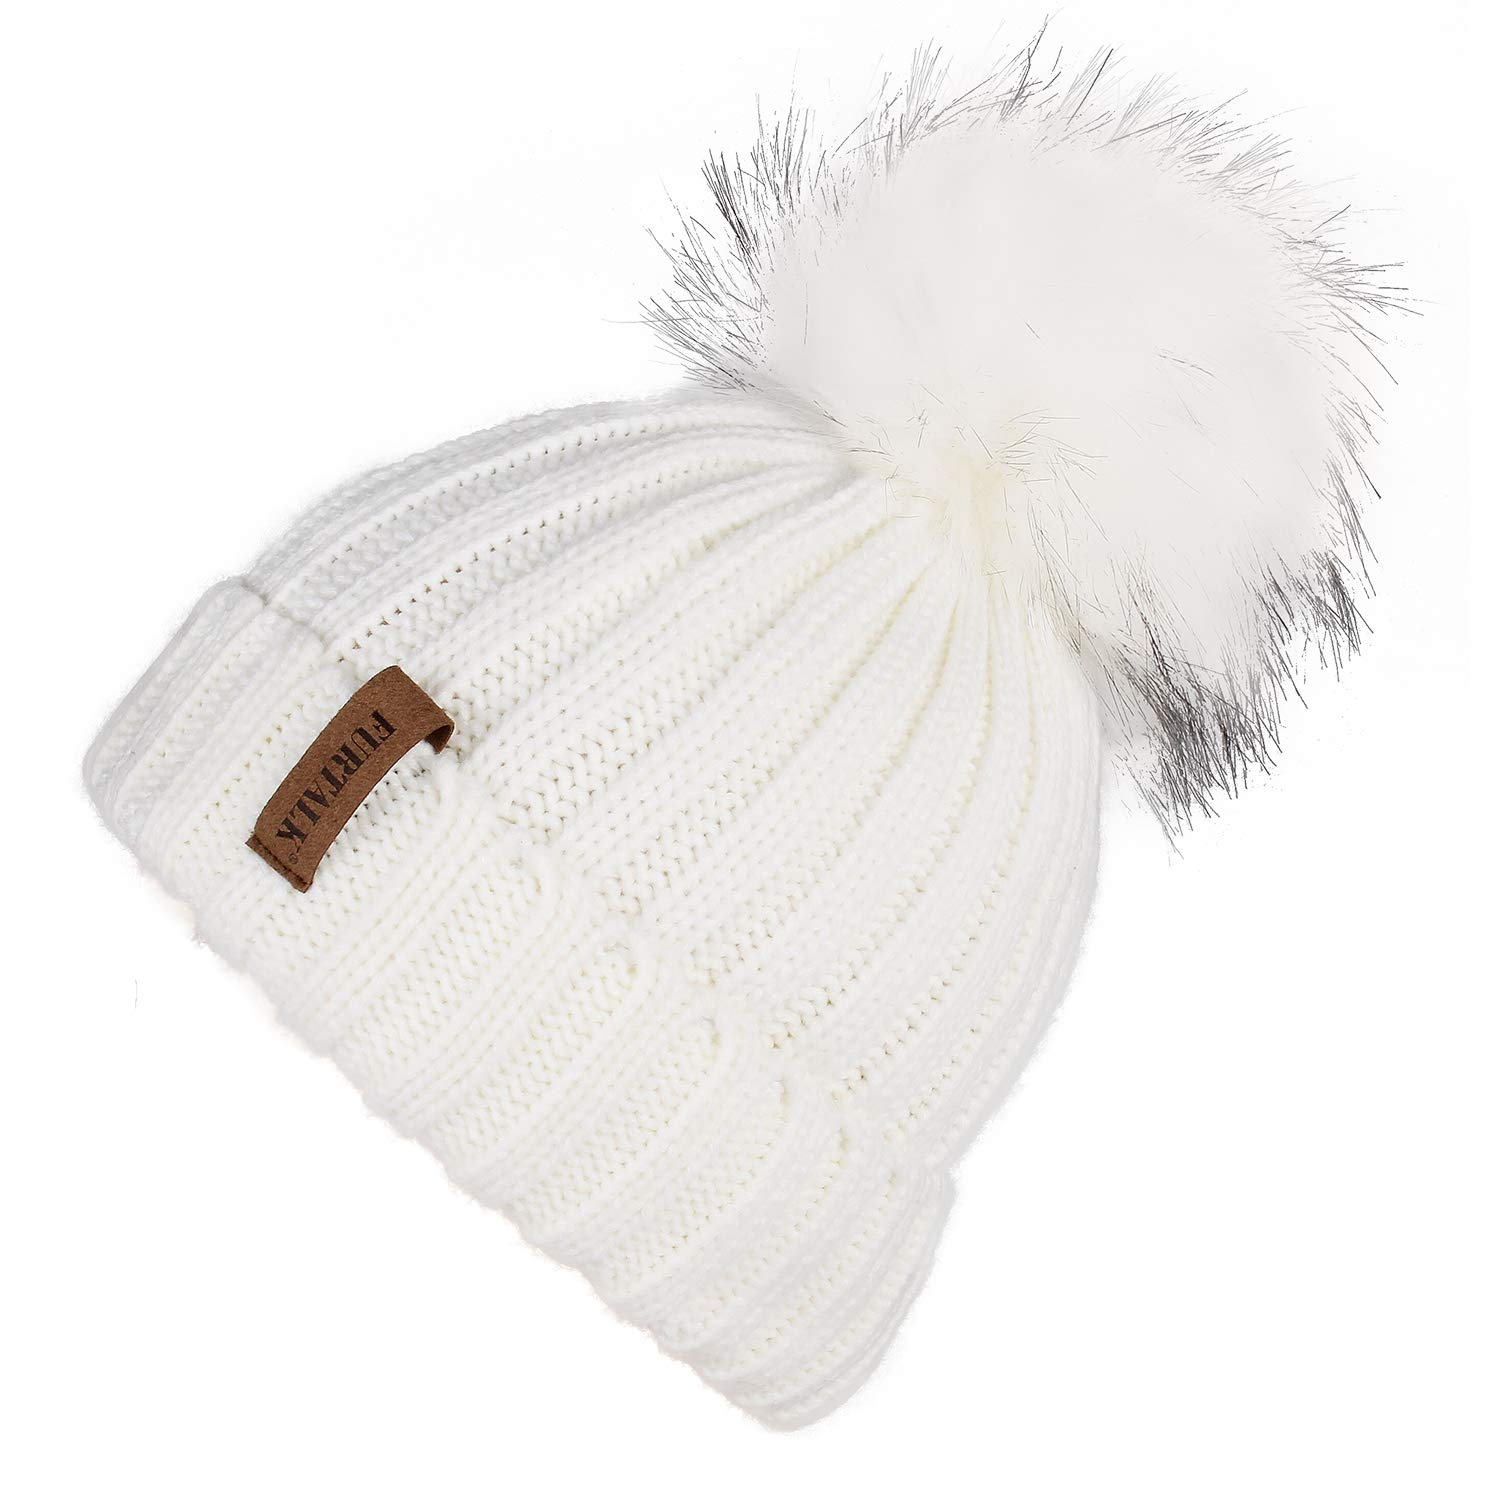 FURTALK Kids Winter Knitted Faux Fur Pom Pom Cap Toddler Boys Girls Kids Beanie Hat (Ages 1-6) (One Size, White+White pom) by FURTALK